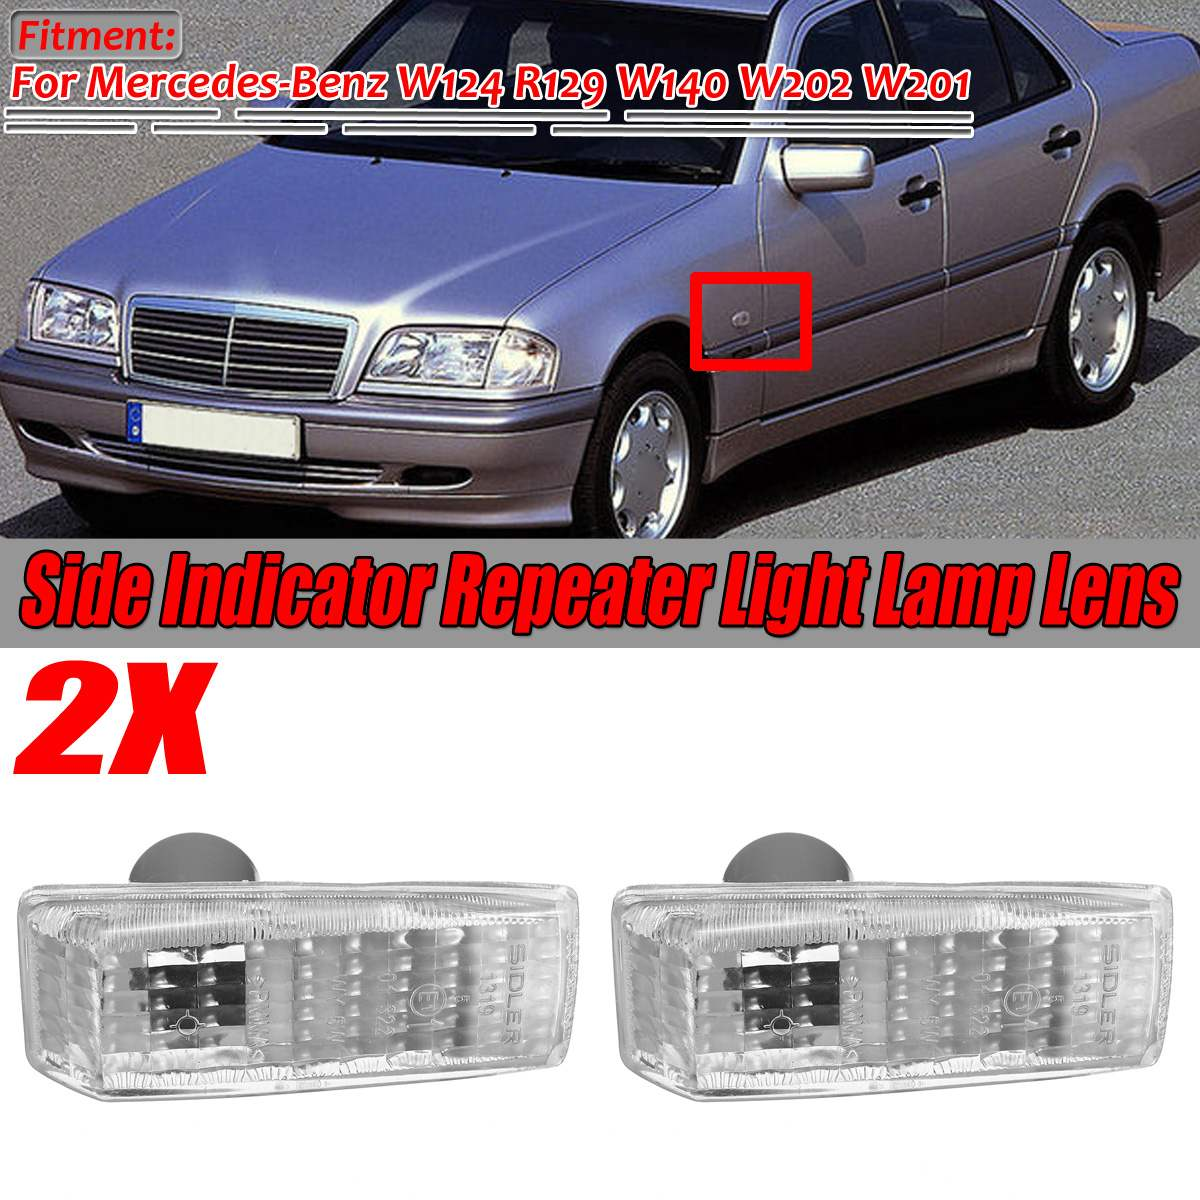 1 Pair Car Side Marker Light Cover Indicator Repeater Light Lamp Lens Co ver Trim For <font><b>Mercedes</b></font> For <font><b>Benz</b></font> W124 R129 <font><b>W140</b></font> W202 W201 image